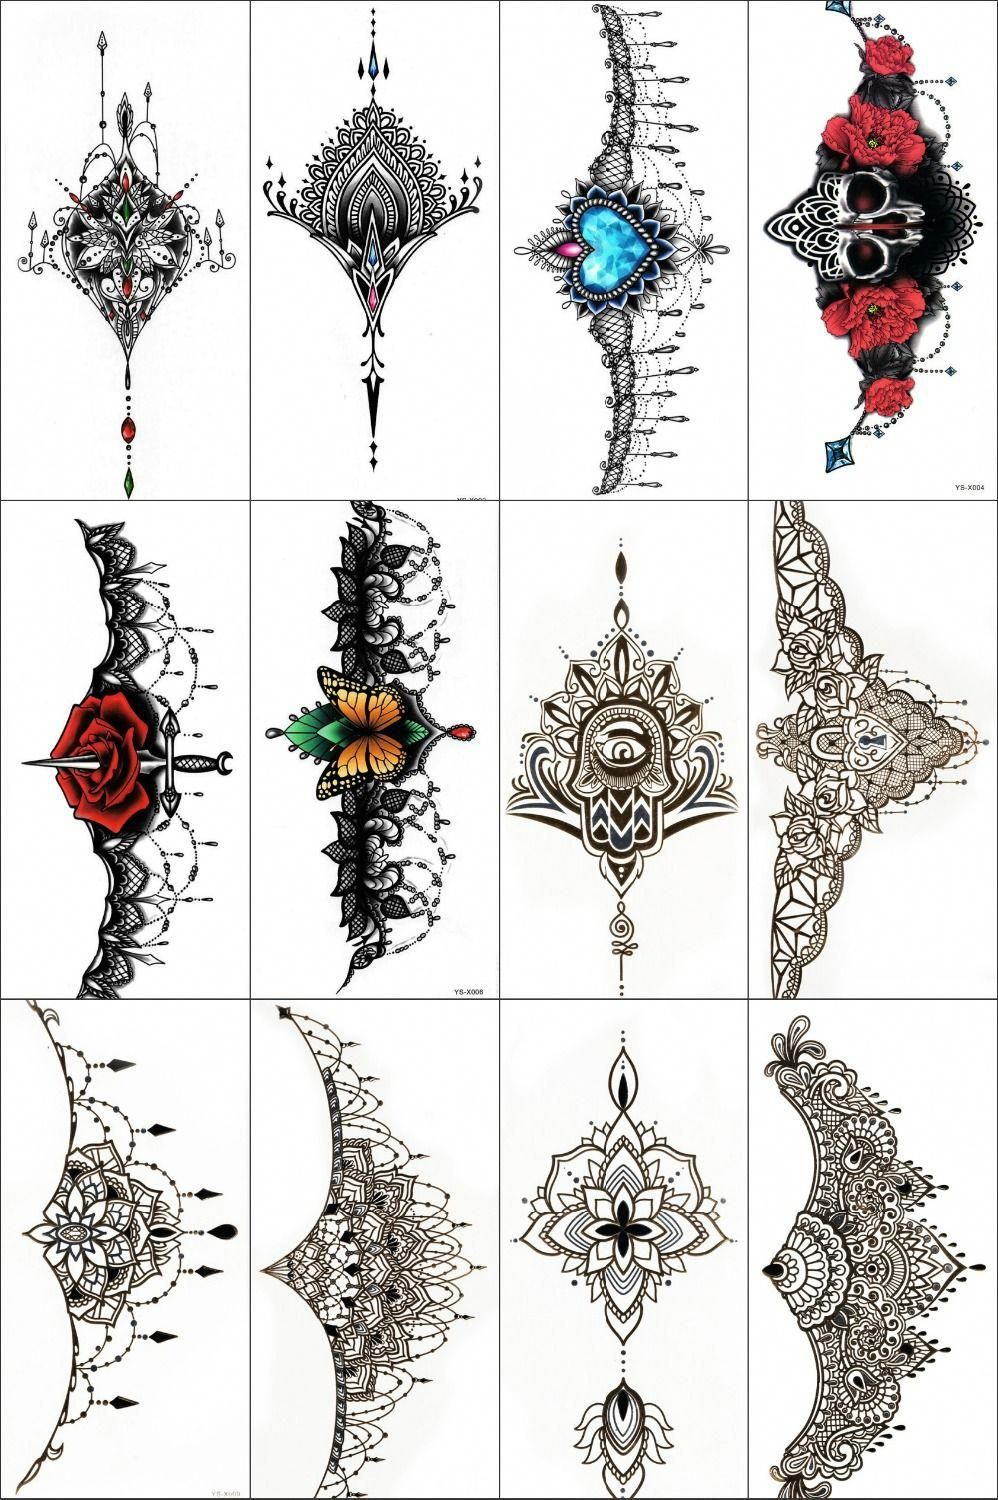 Chest Piece Tattoo Prices: 12pcs Gold Flash Tattoo Metallic Colorful Chest Sticker